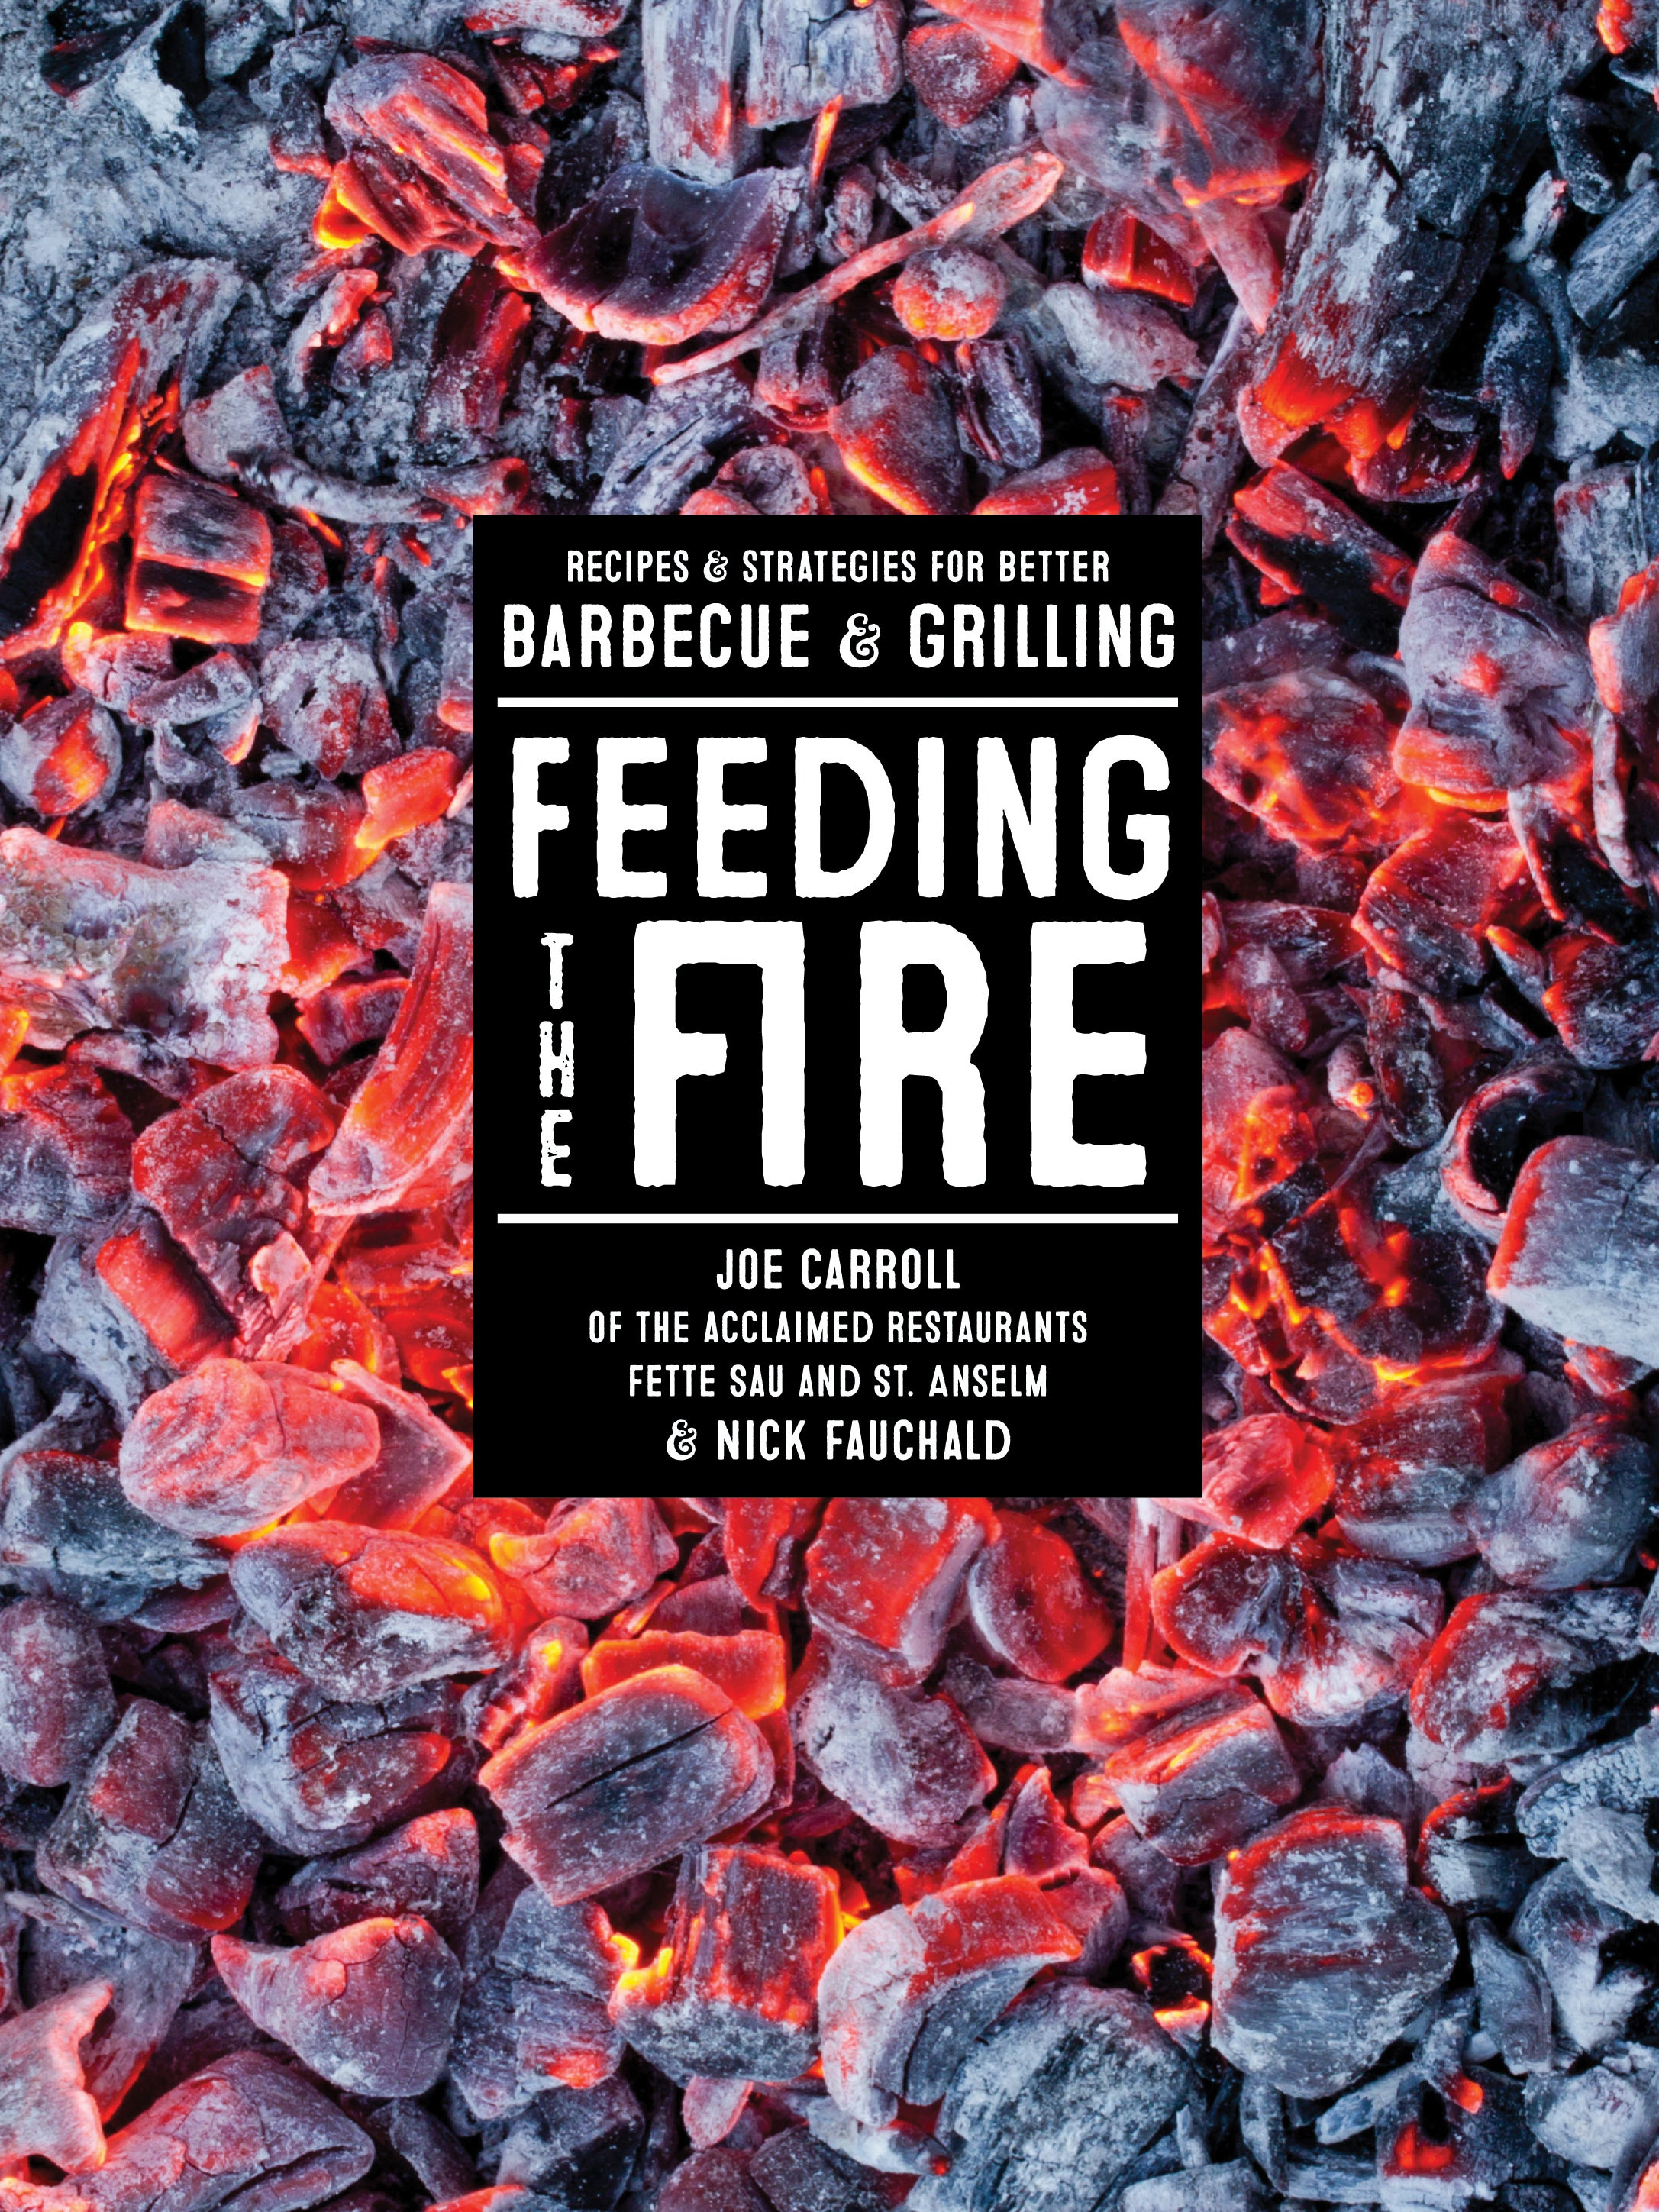 10 Best Barbecue Books The Independent Power Plant Layout Fire Red Organised